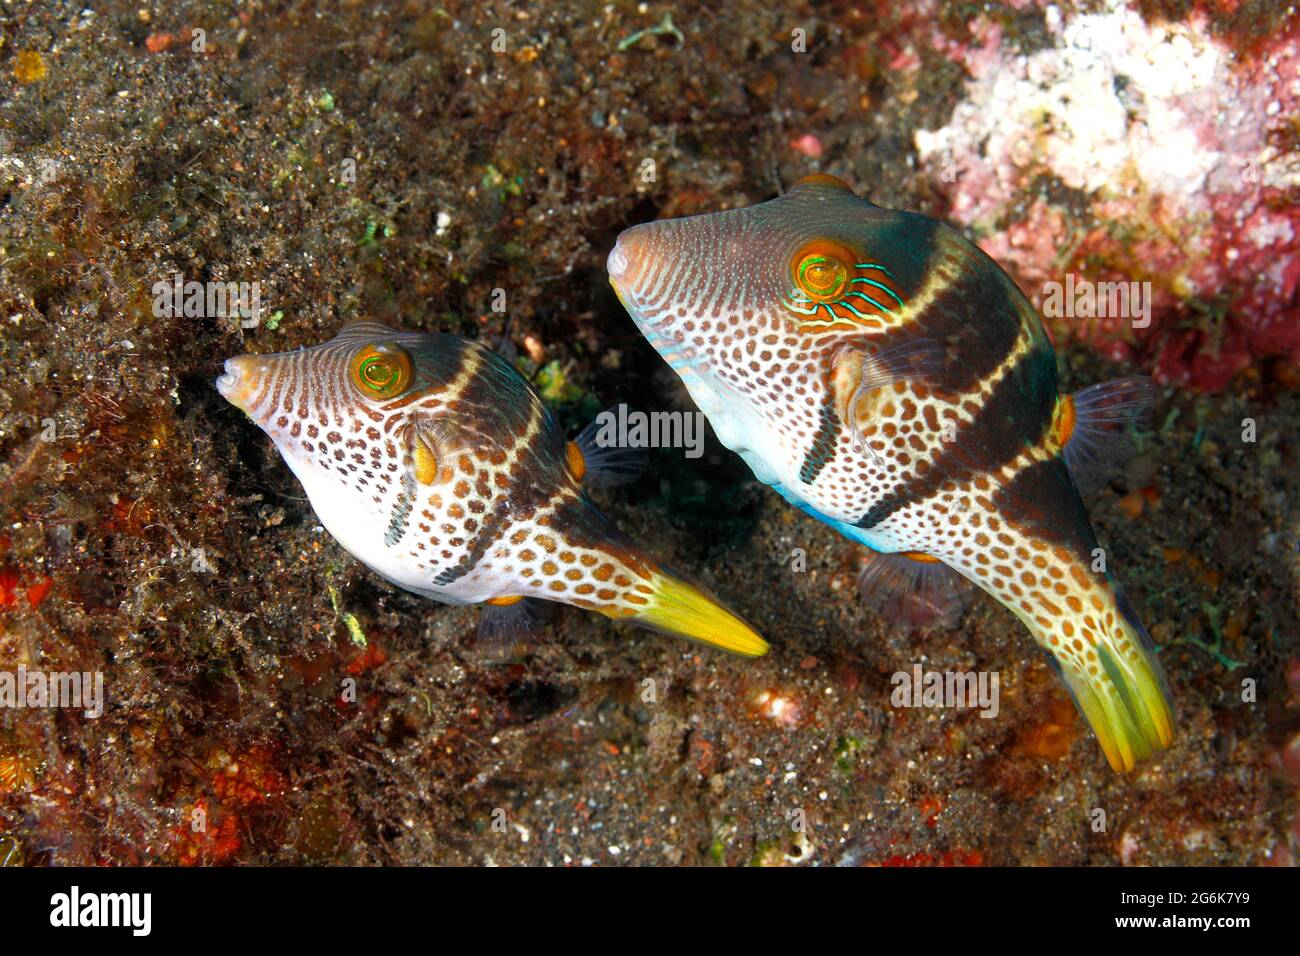 mating-pair-of-black-saddled-or-valentines-pufferfish-or-toby-canthigaster-valentini-smaller-female-on-left-preparing-substrate-to-lay-eggs-2G6K7Y9.jpg